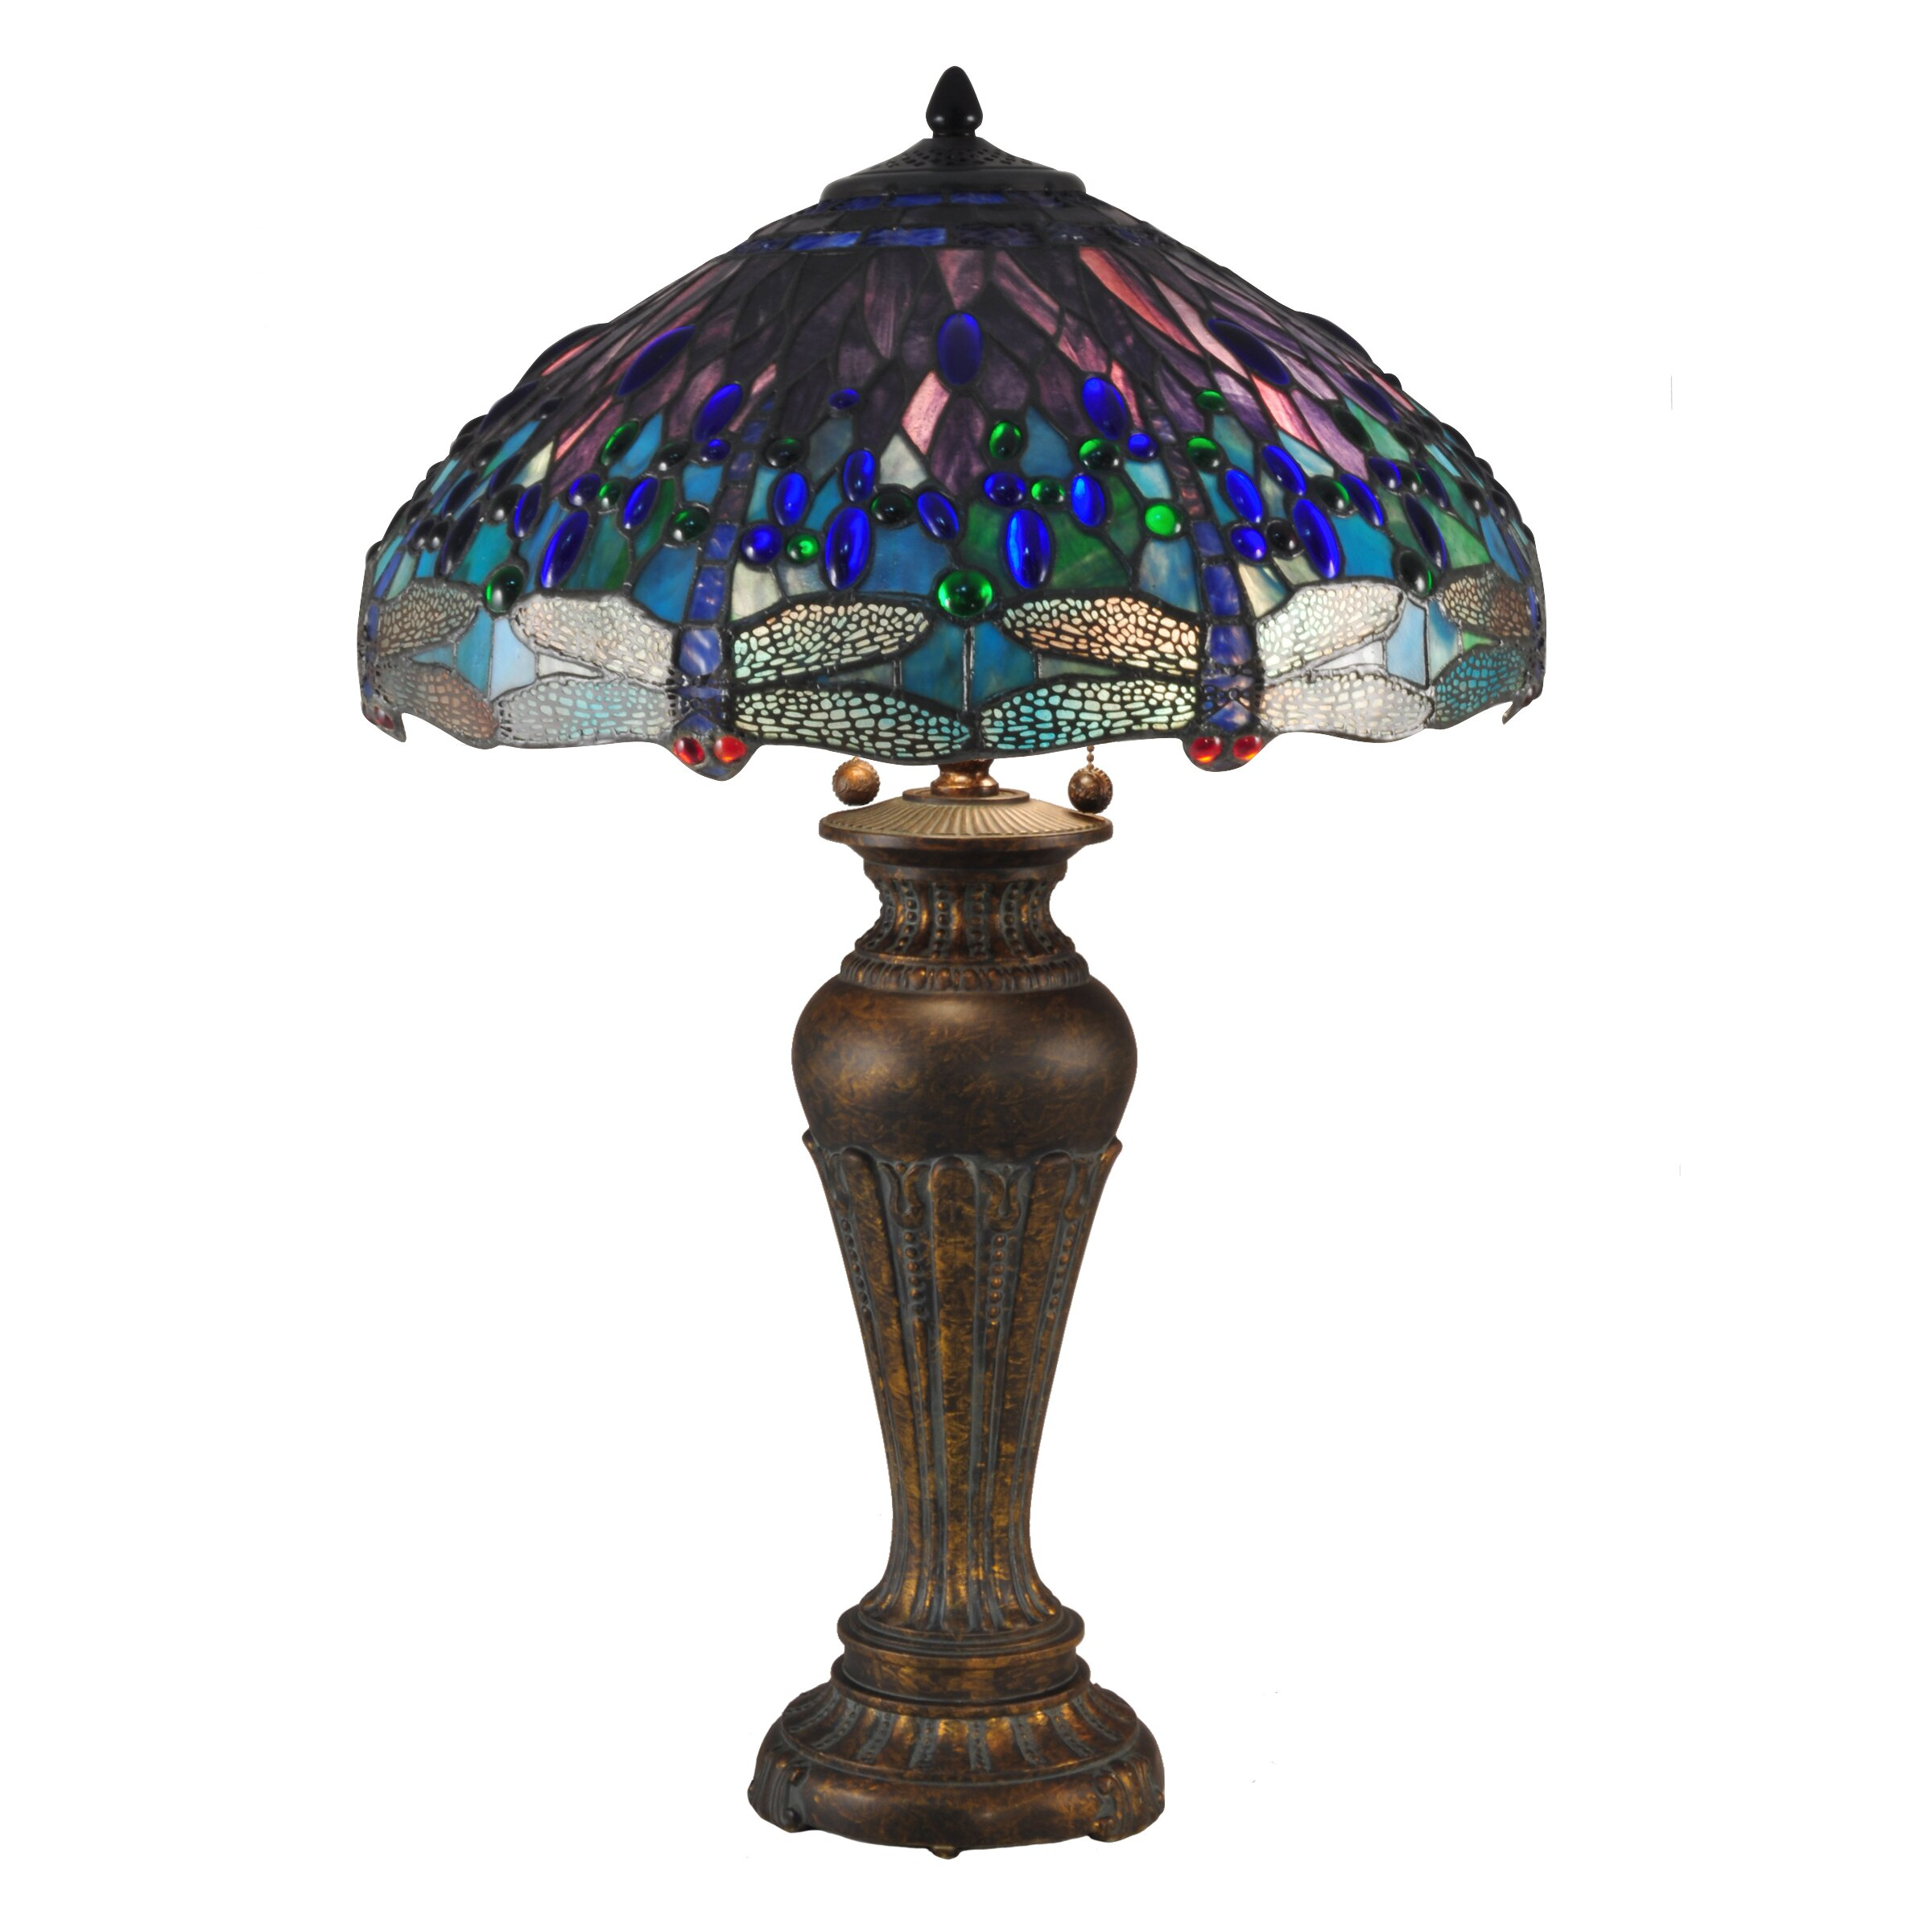 Dragonfly bathroom decor - Dale Tiffany Dragonfly 28 5 Quot Table Lamp Wayfair